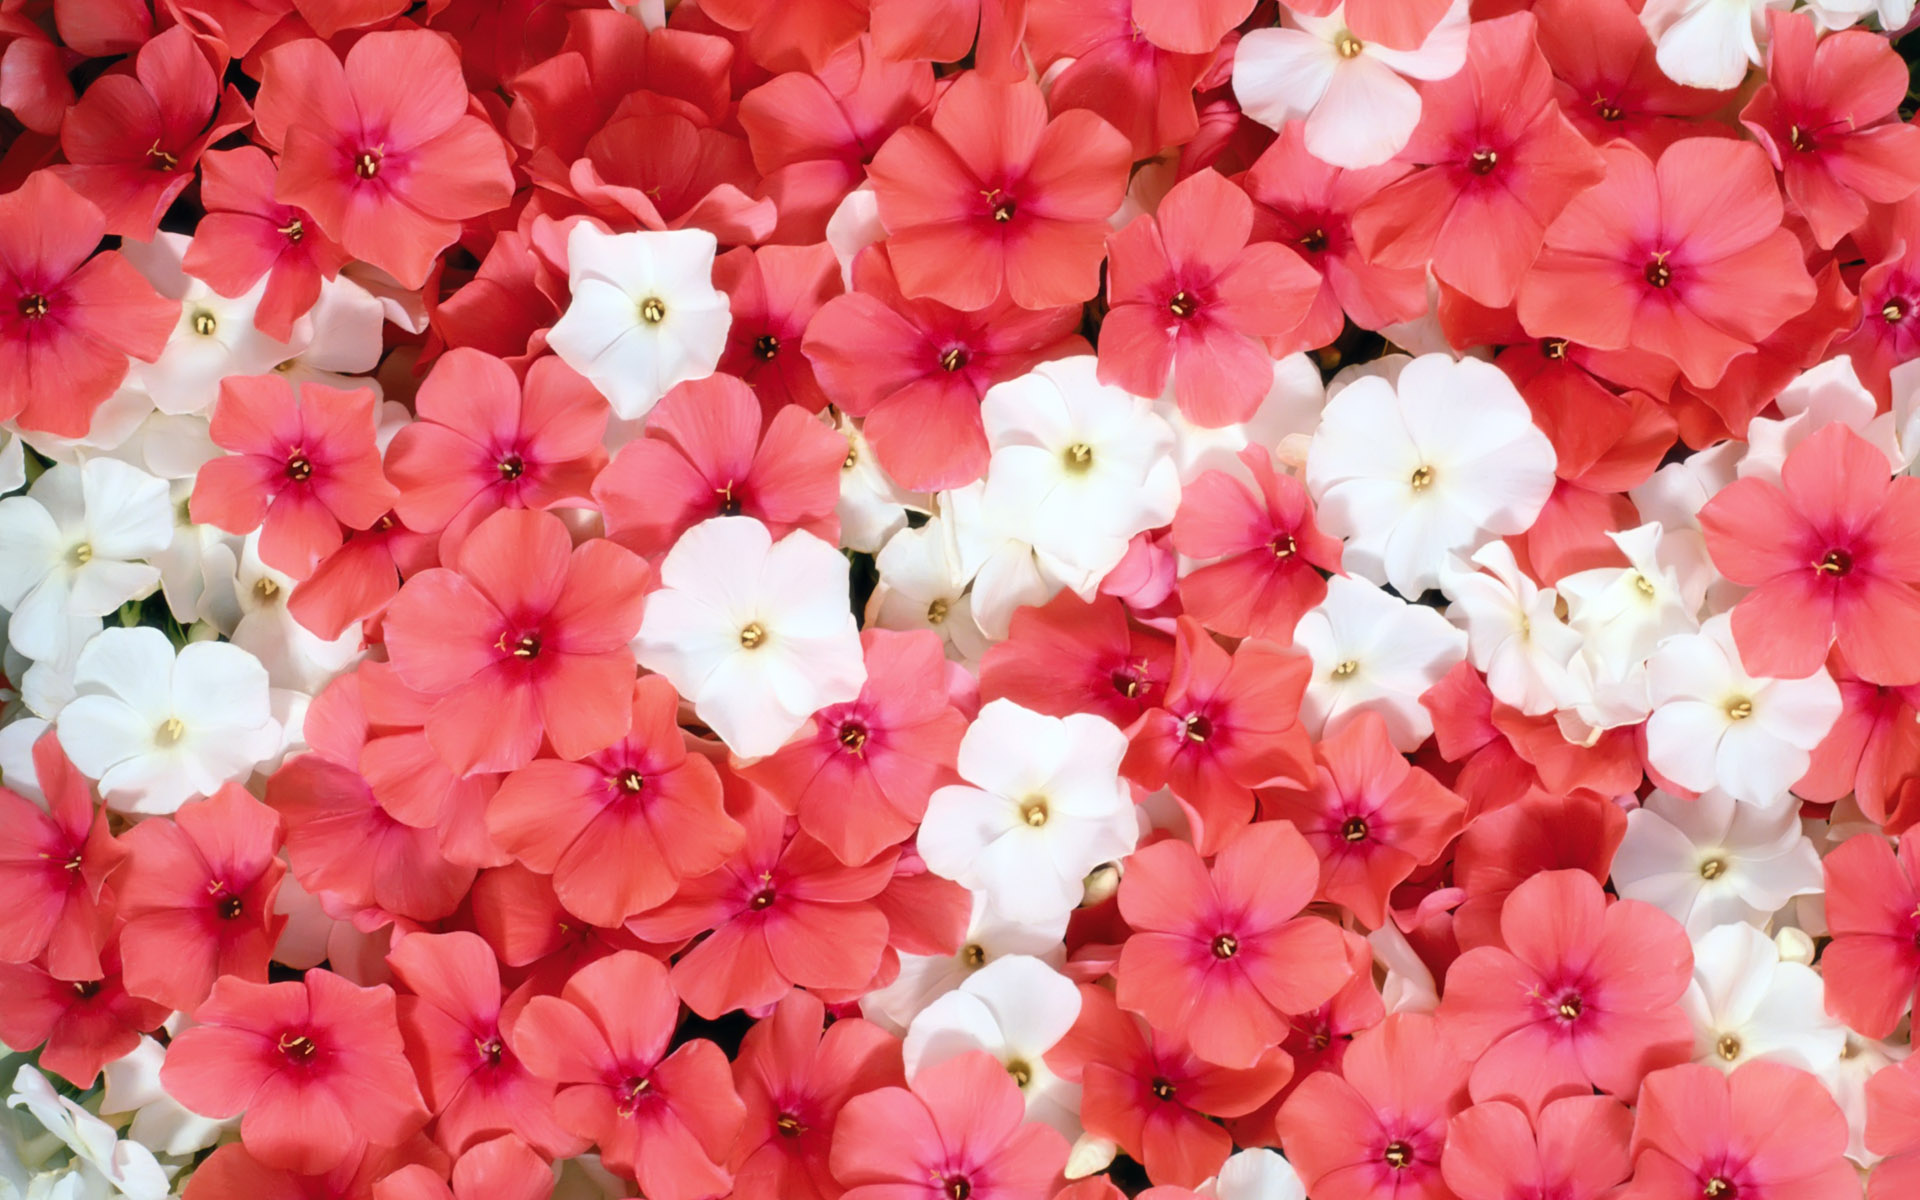 Bright pink flowers wallpaper hd wallpapers pic mch049643 dzbc download mightylinksfo